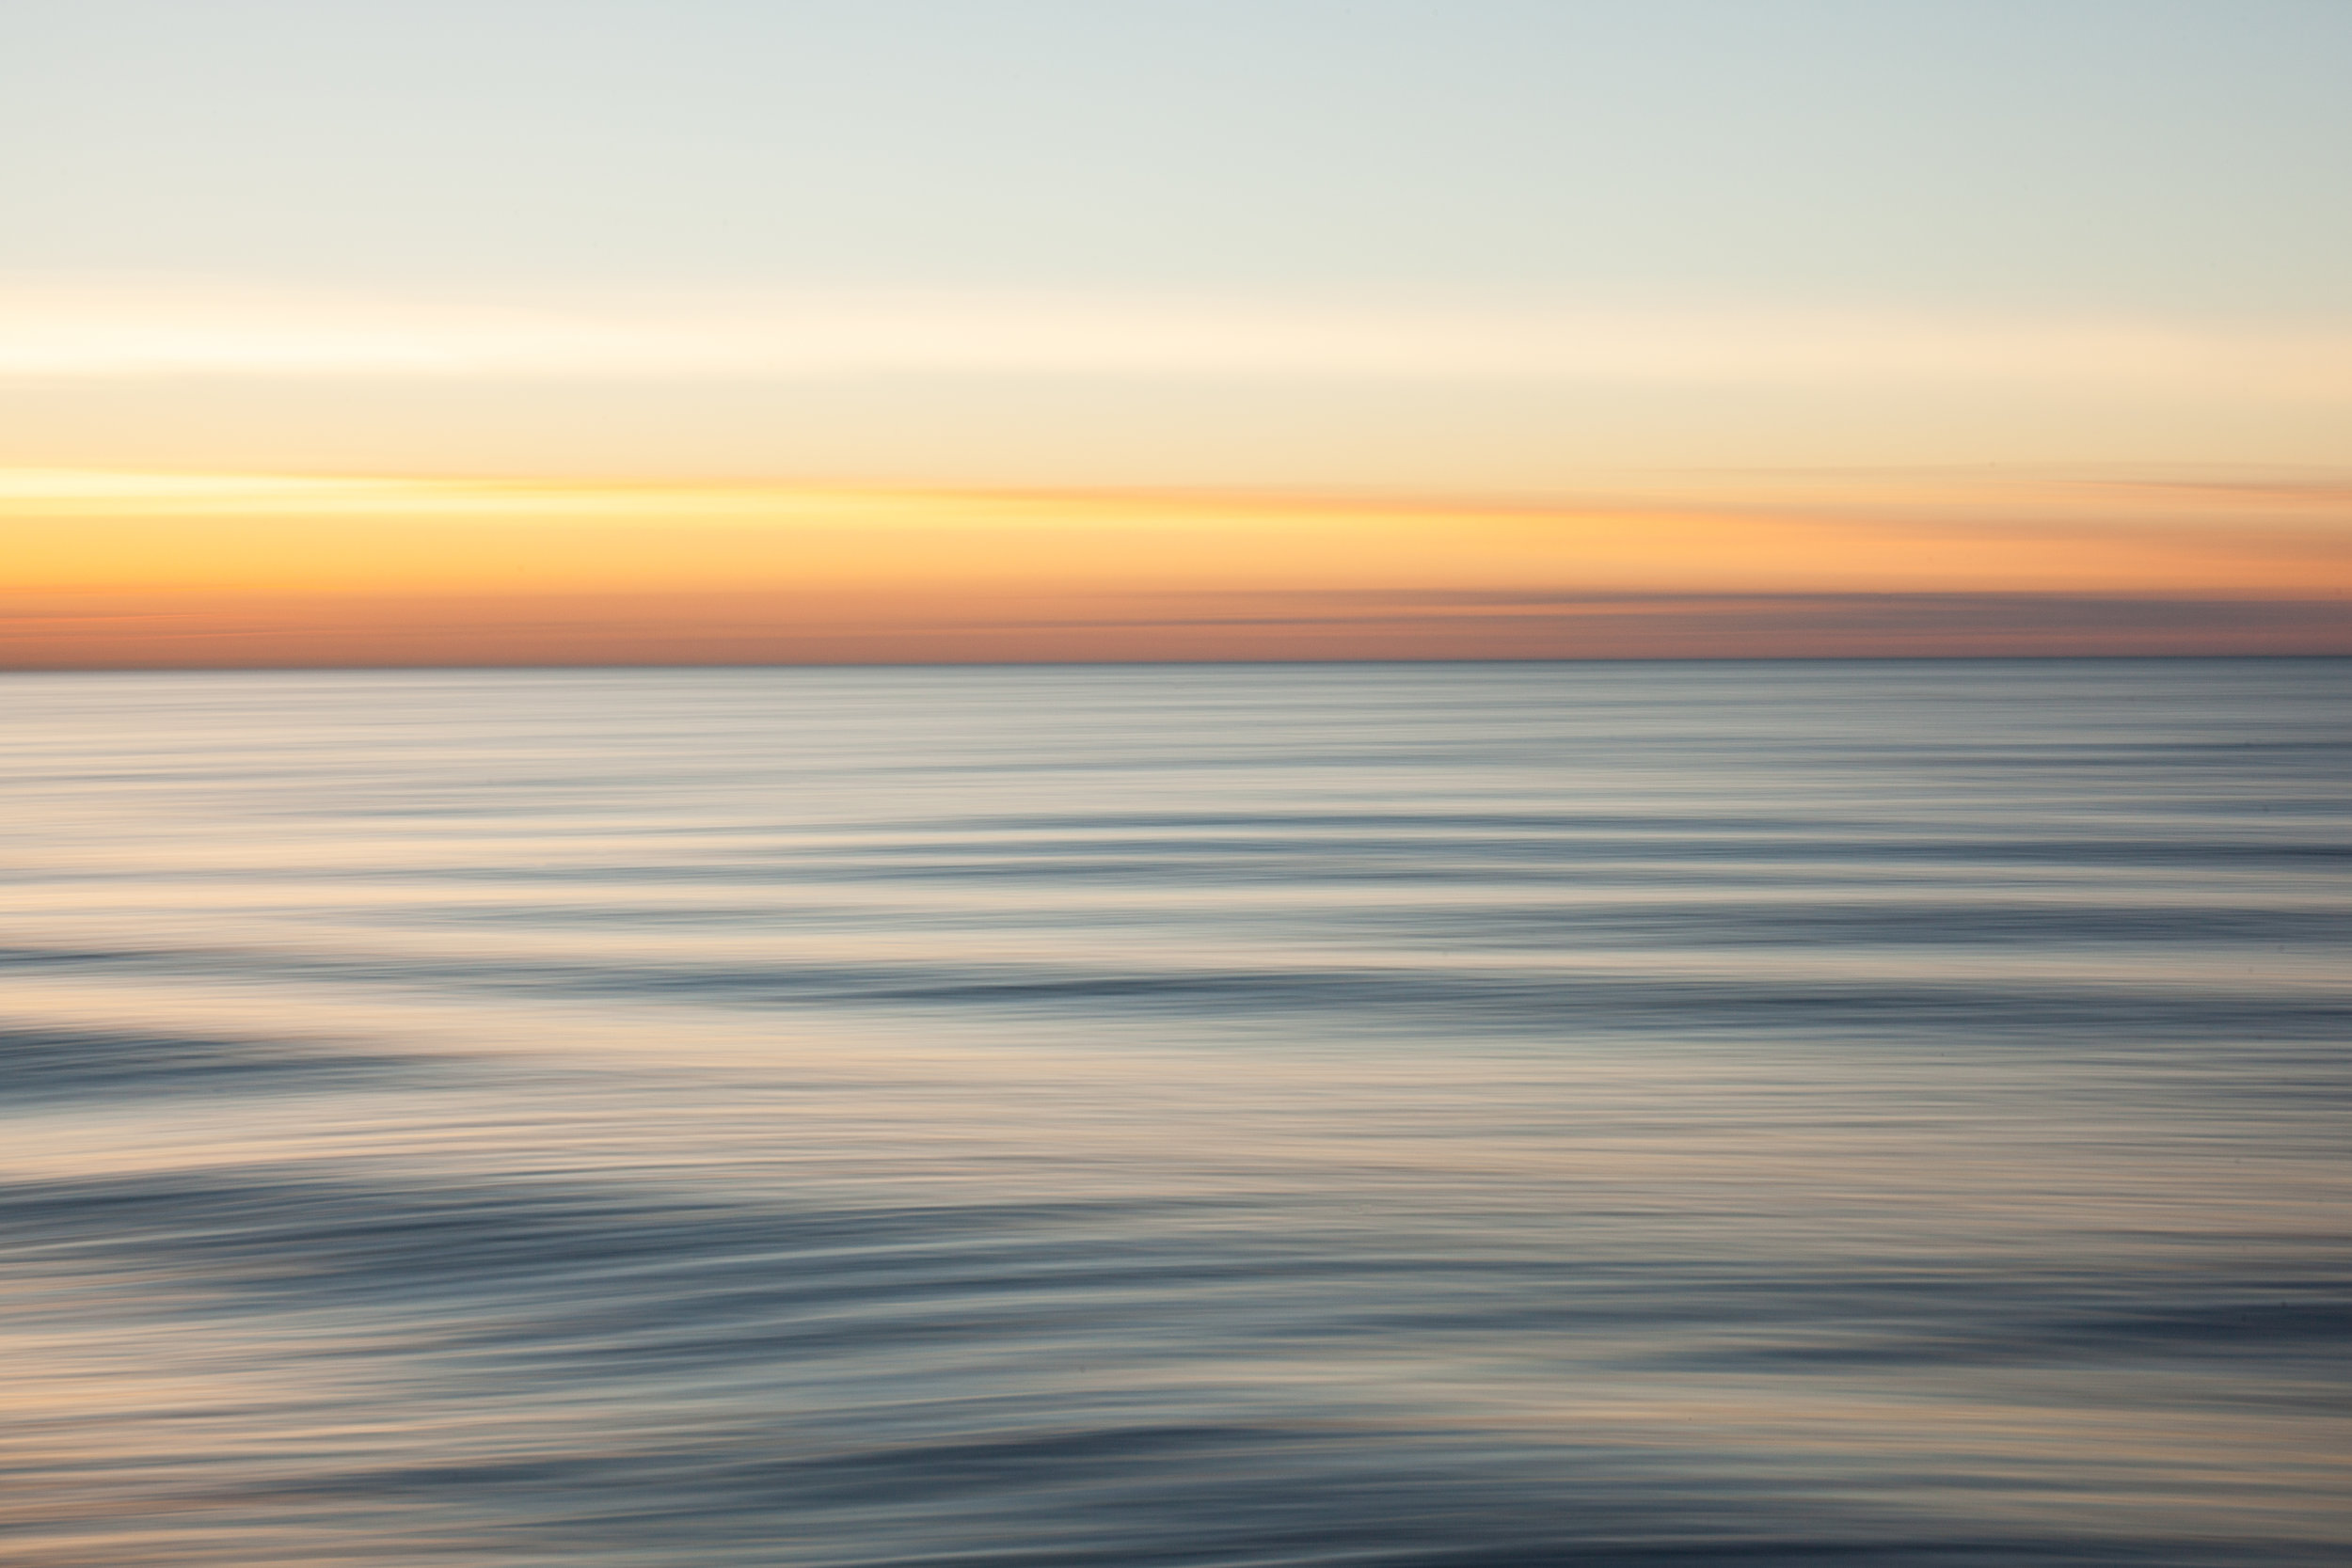 An abstract water photo at sunset by Geraint Rowland Photography.